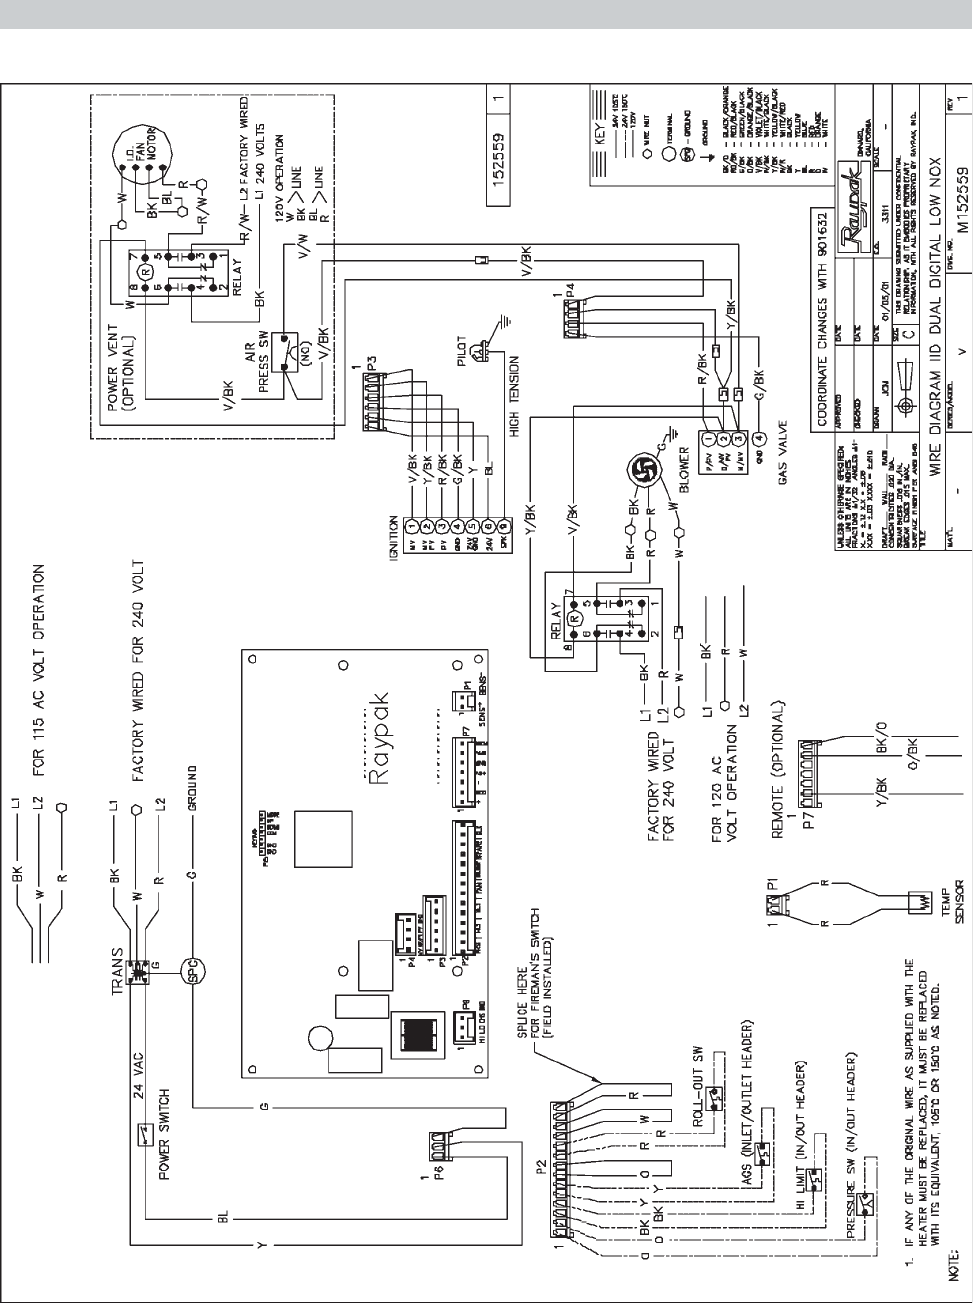 wiring diagram rheem pool heater wiring diagram database schematic diagram pool heater wiring diagram wiring diagram database deck wiring diagram pool heater wiring diagram